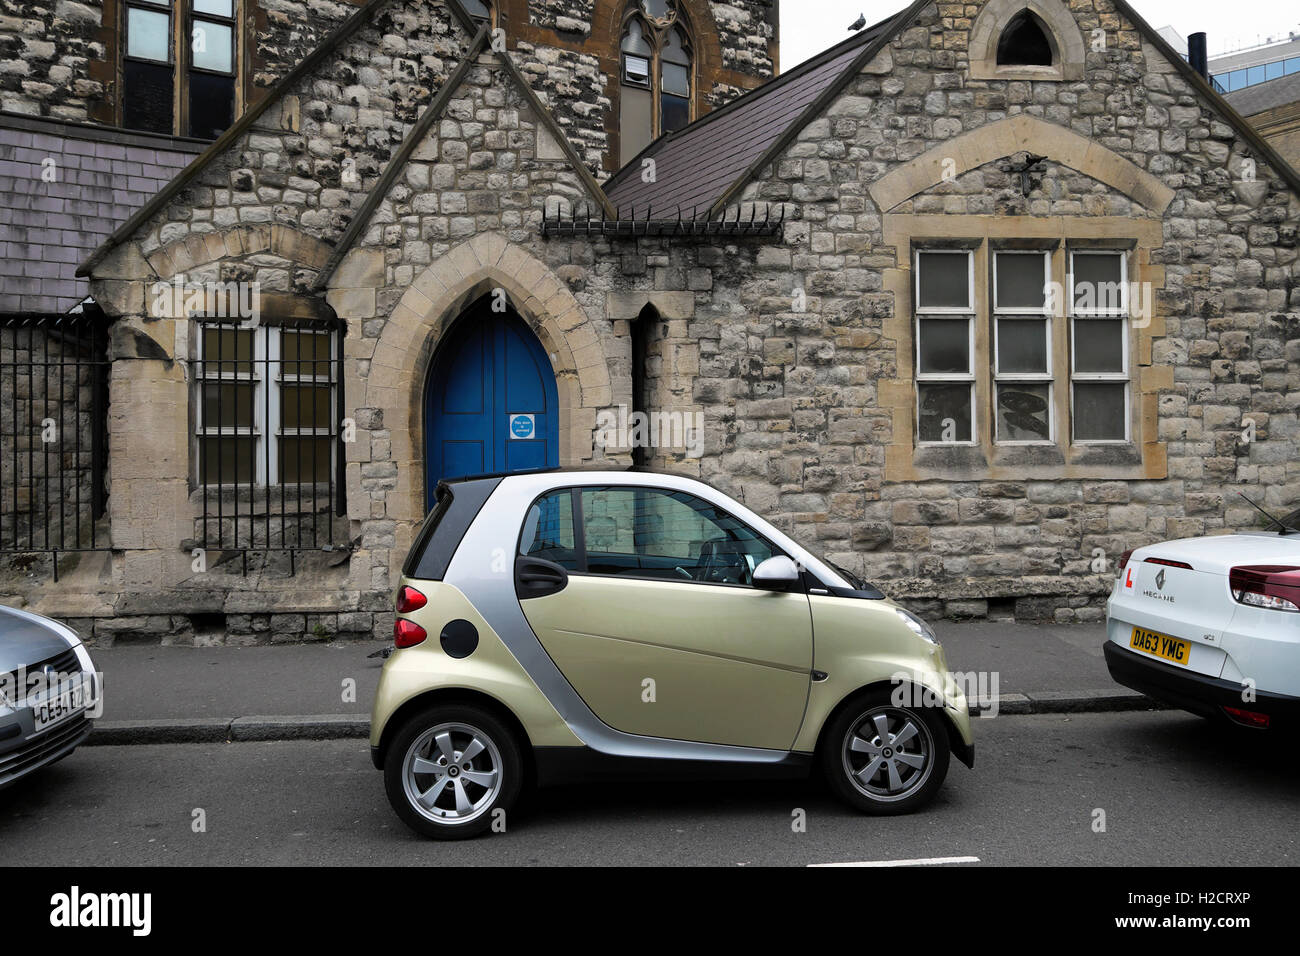 Smart car parked outside Whitefield's Tabernacle Moorfields in Tabernacle Street East London UK - Stock Image